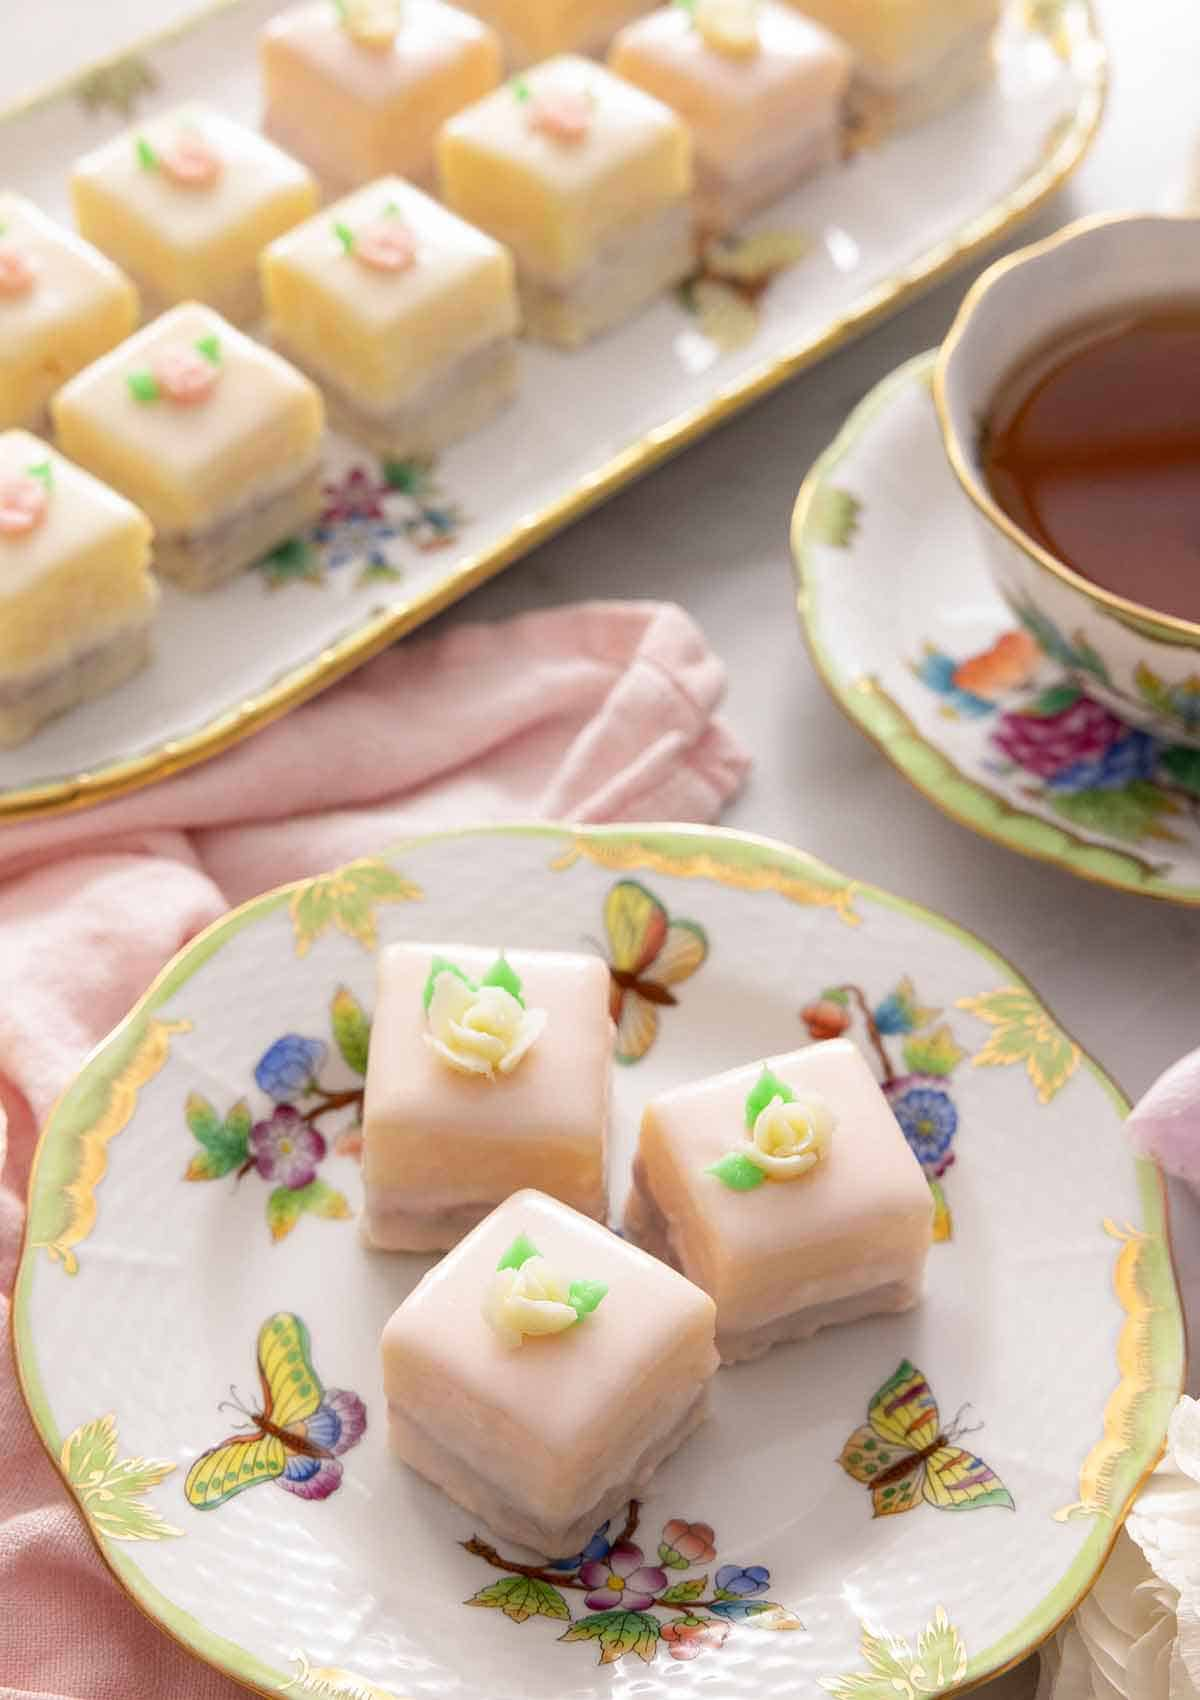 Overhead view of a serving platter of petit fours beside a plate with three.